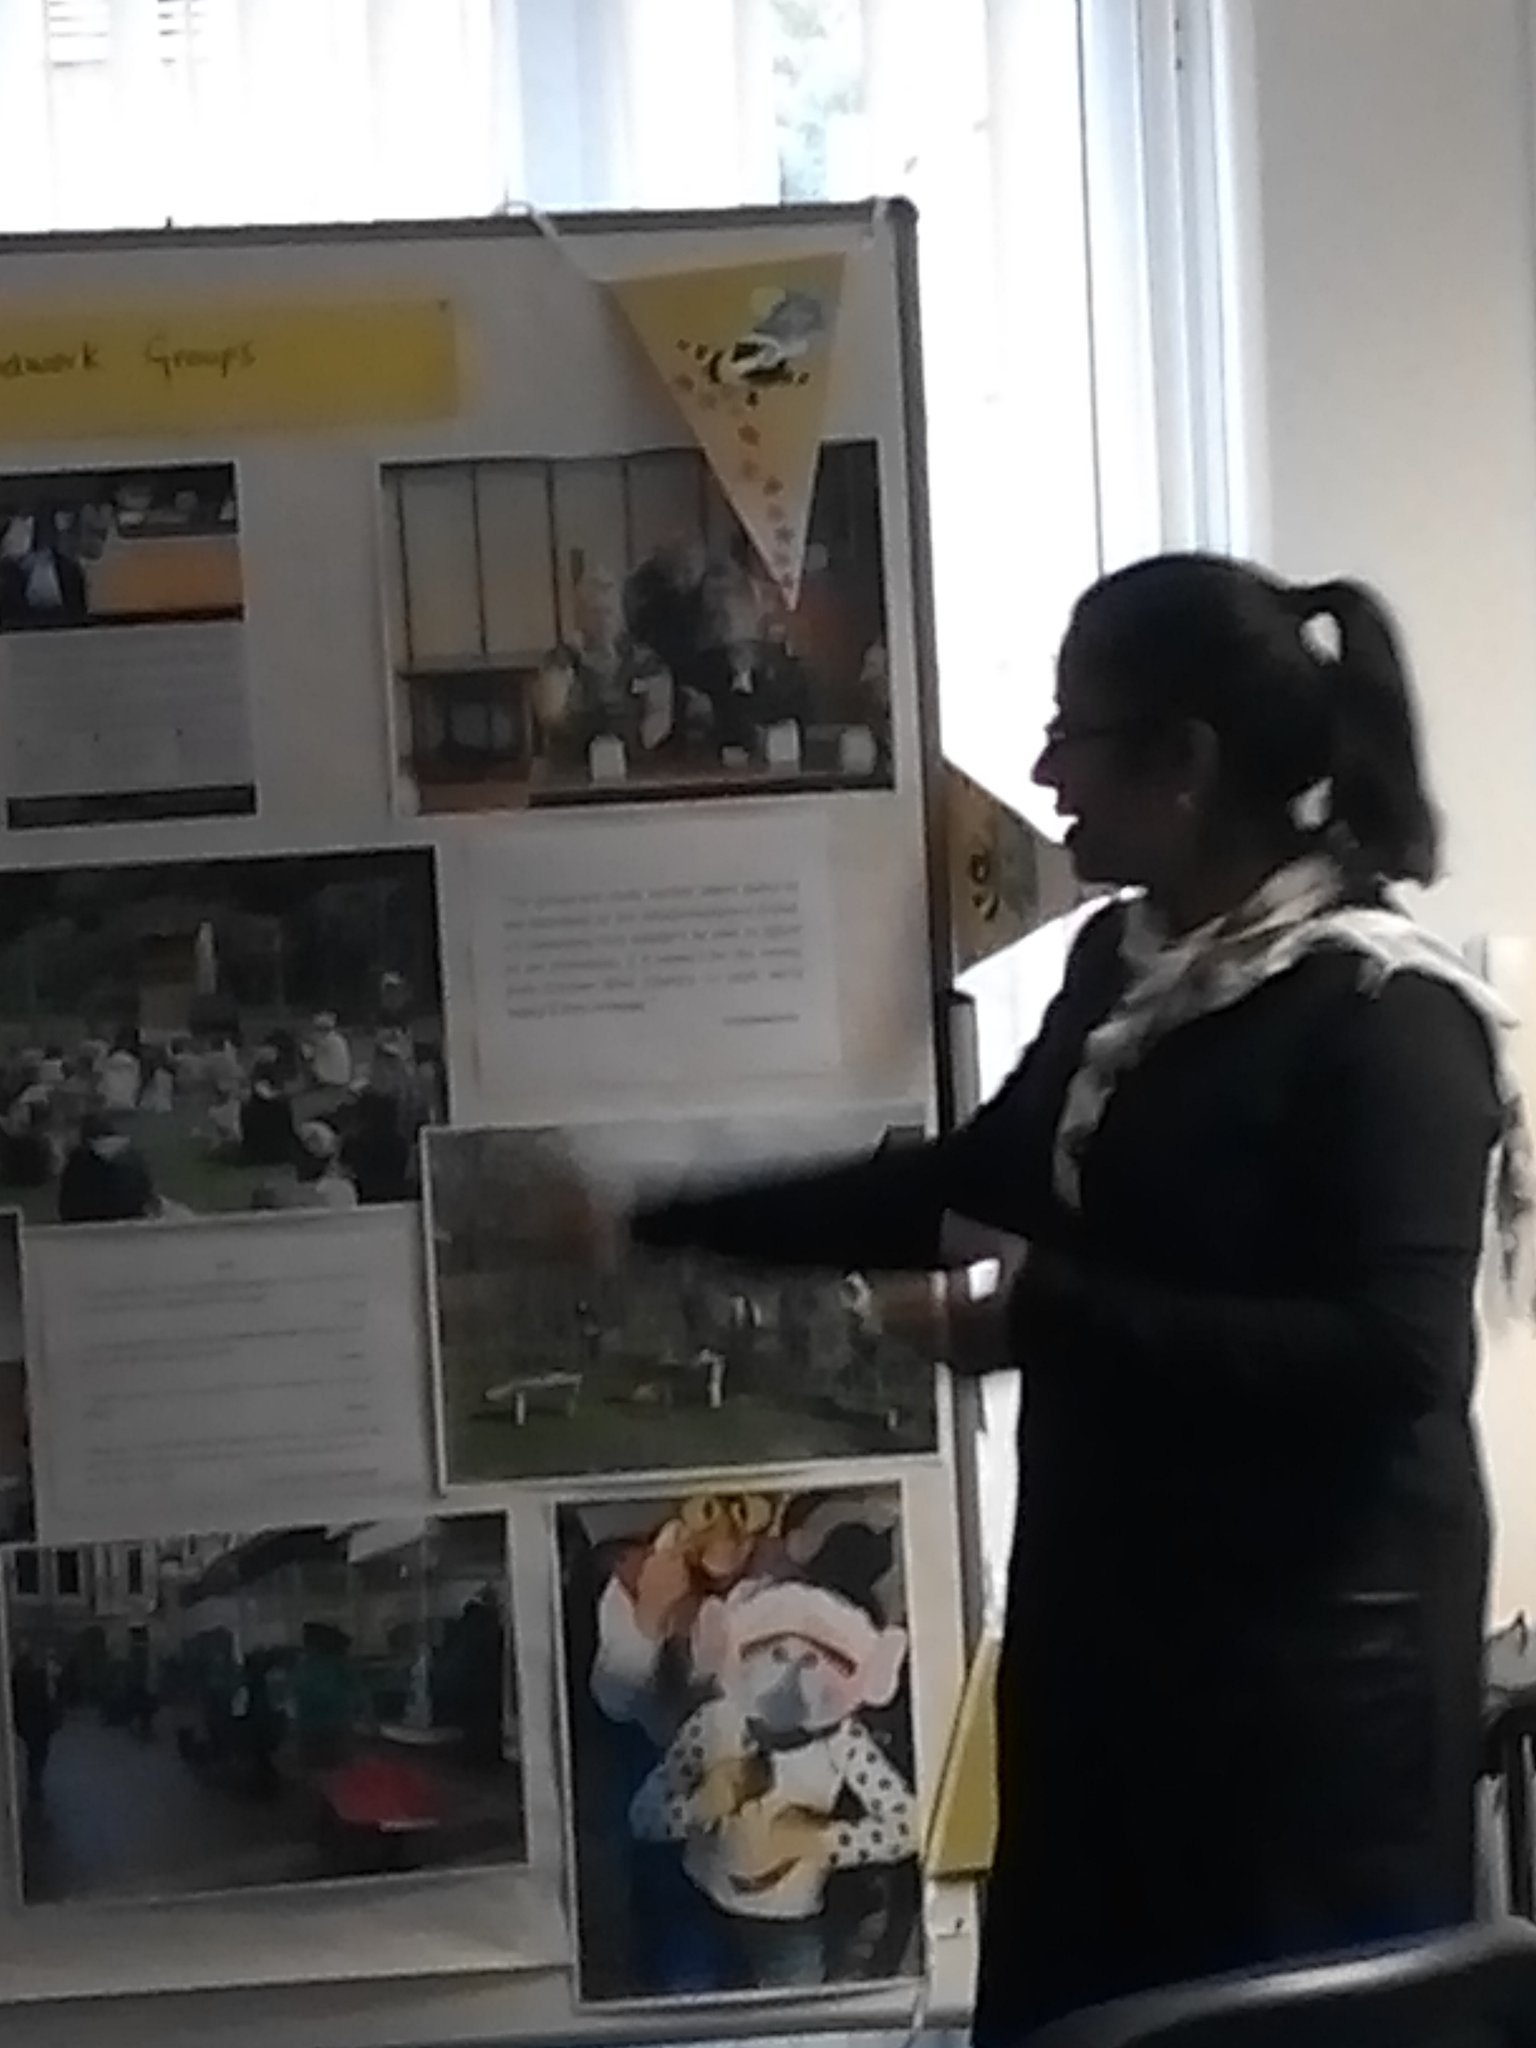 Sajida introducing #groundworkgroups  @WolvesVSC #ourplace event https://t.co/Q6eq4vhS8q